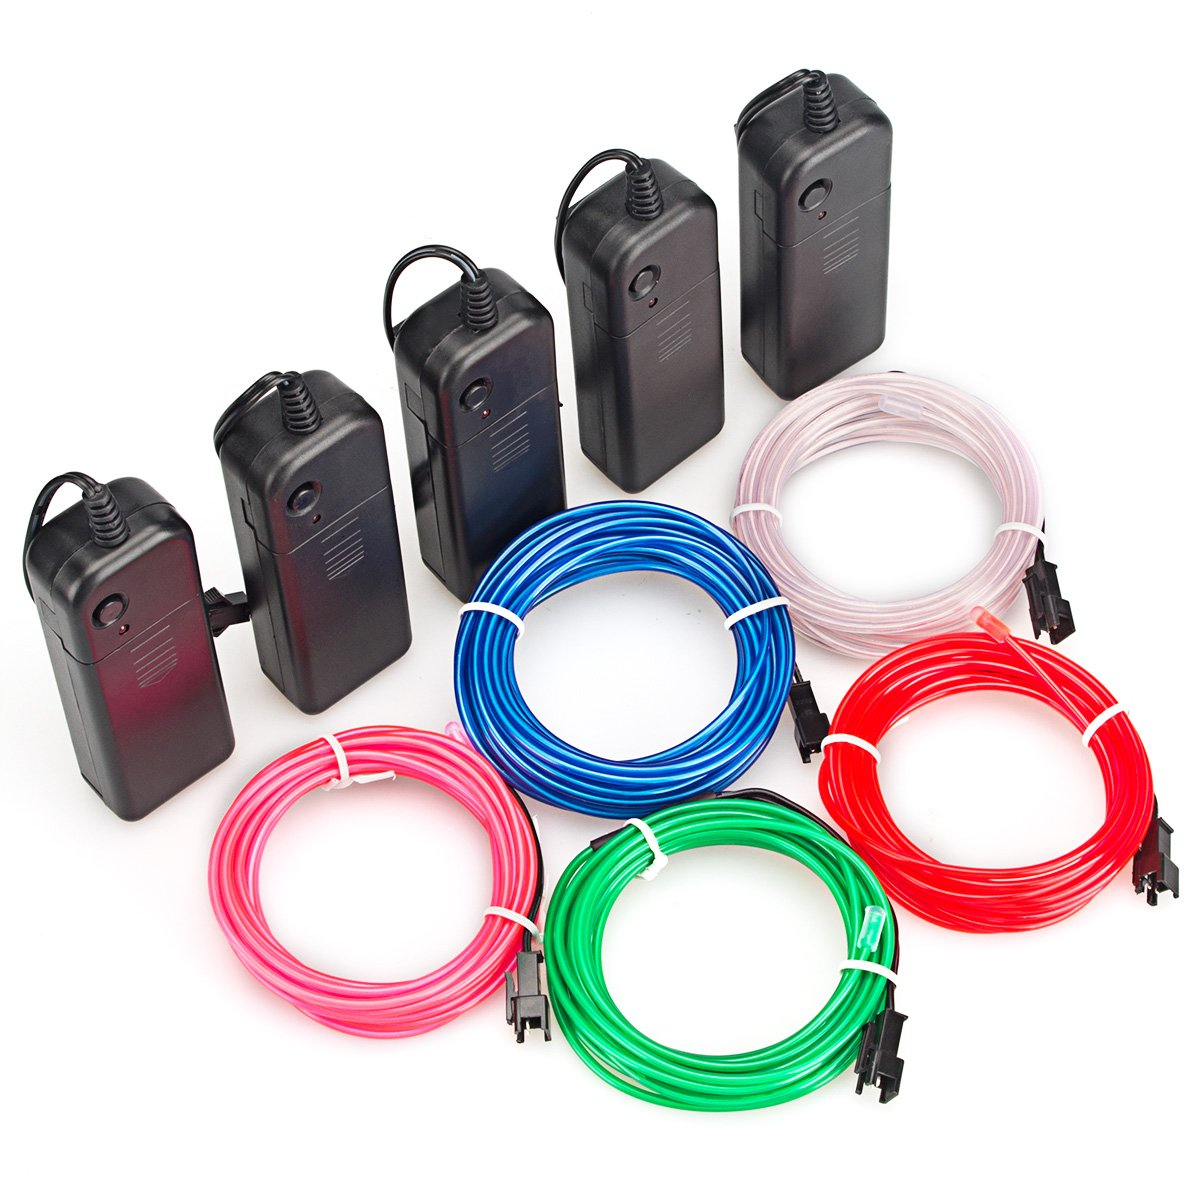 Zitrades EL Wire Kit 9ft, Portable Neon Lights for Parties, Halloween, Blacklight Run, DIY Decoration (5 Pack, Each of 9ft, Red, Green, Pink, Blue, White)